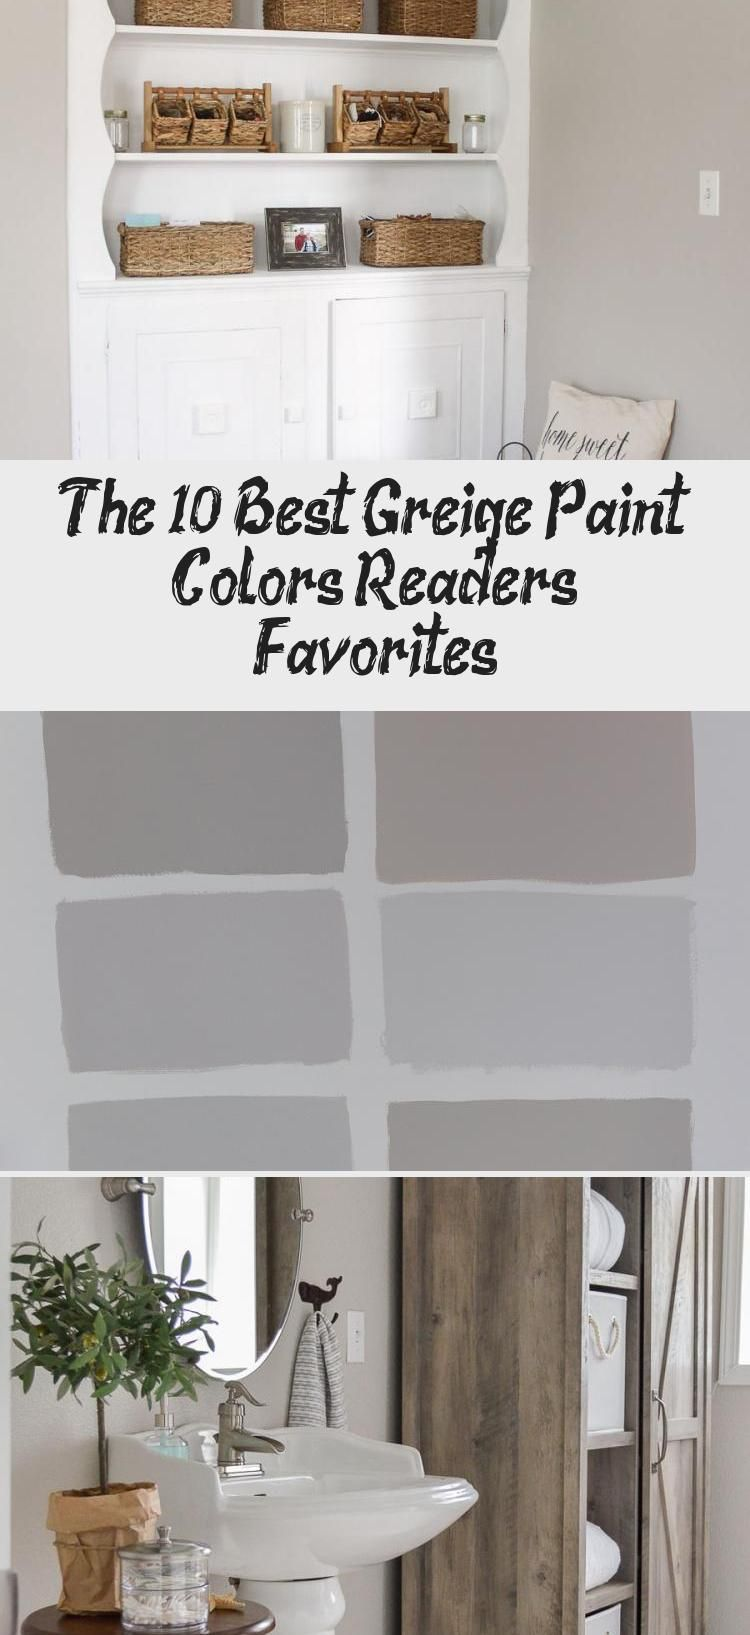 the 10 best greige paint colors readers favorites on 10 most popular paint colors id=62271